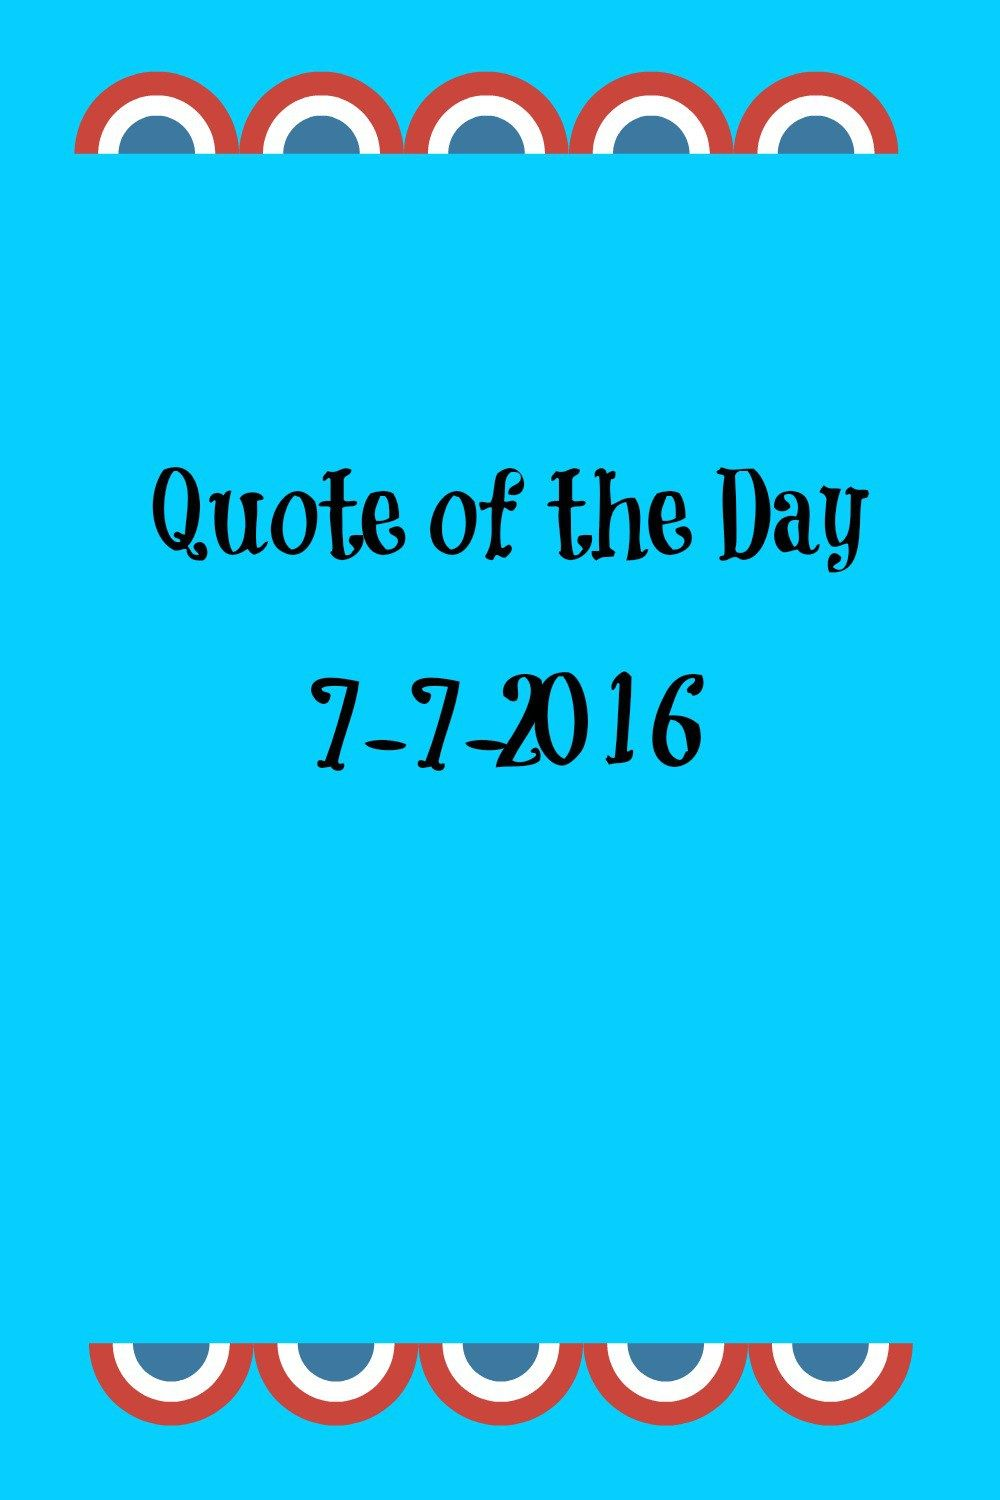 Quote of the day July 7, 2016